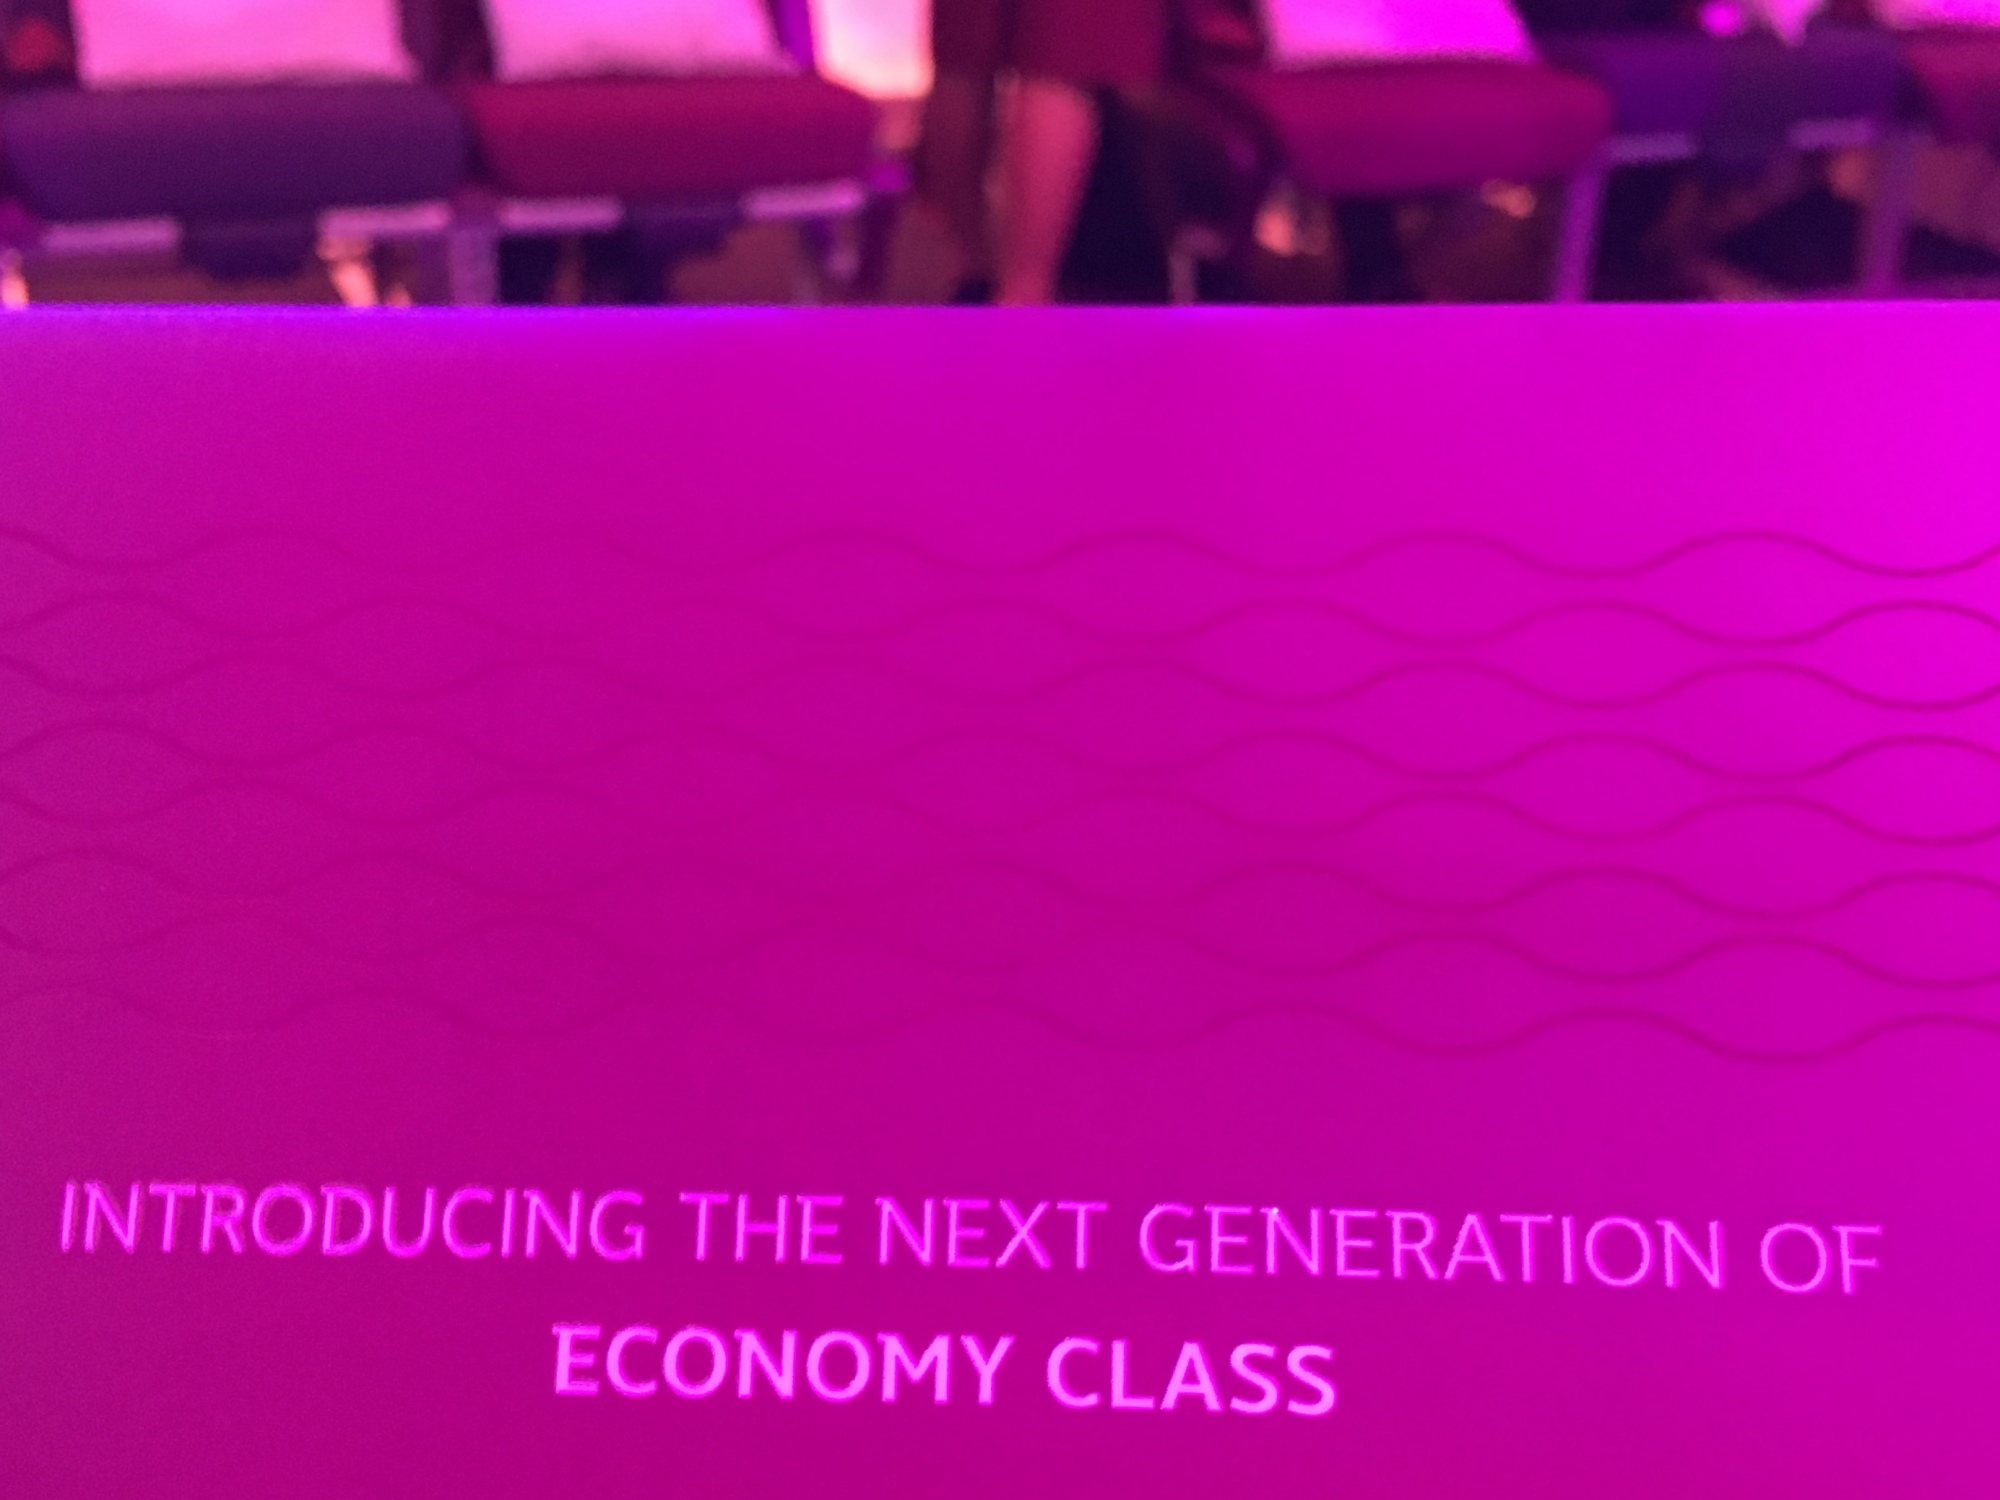 Qatar Airways' revolutionary new economy seat unveiled @itb_berlin